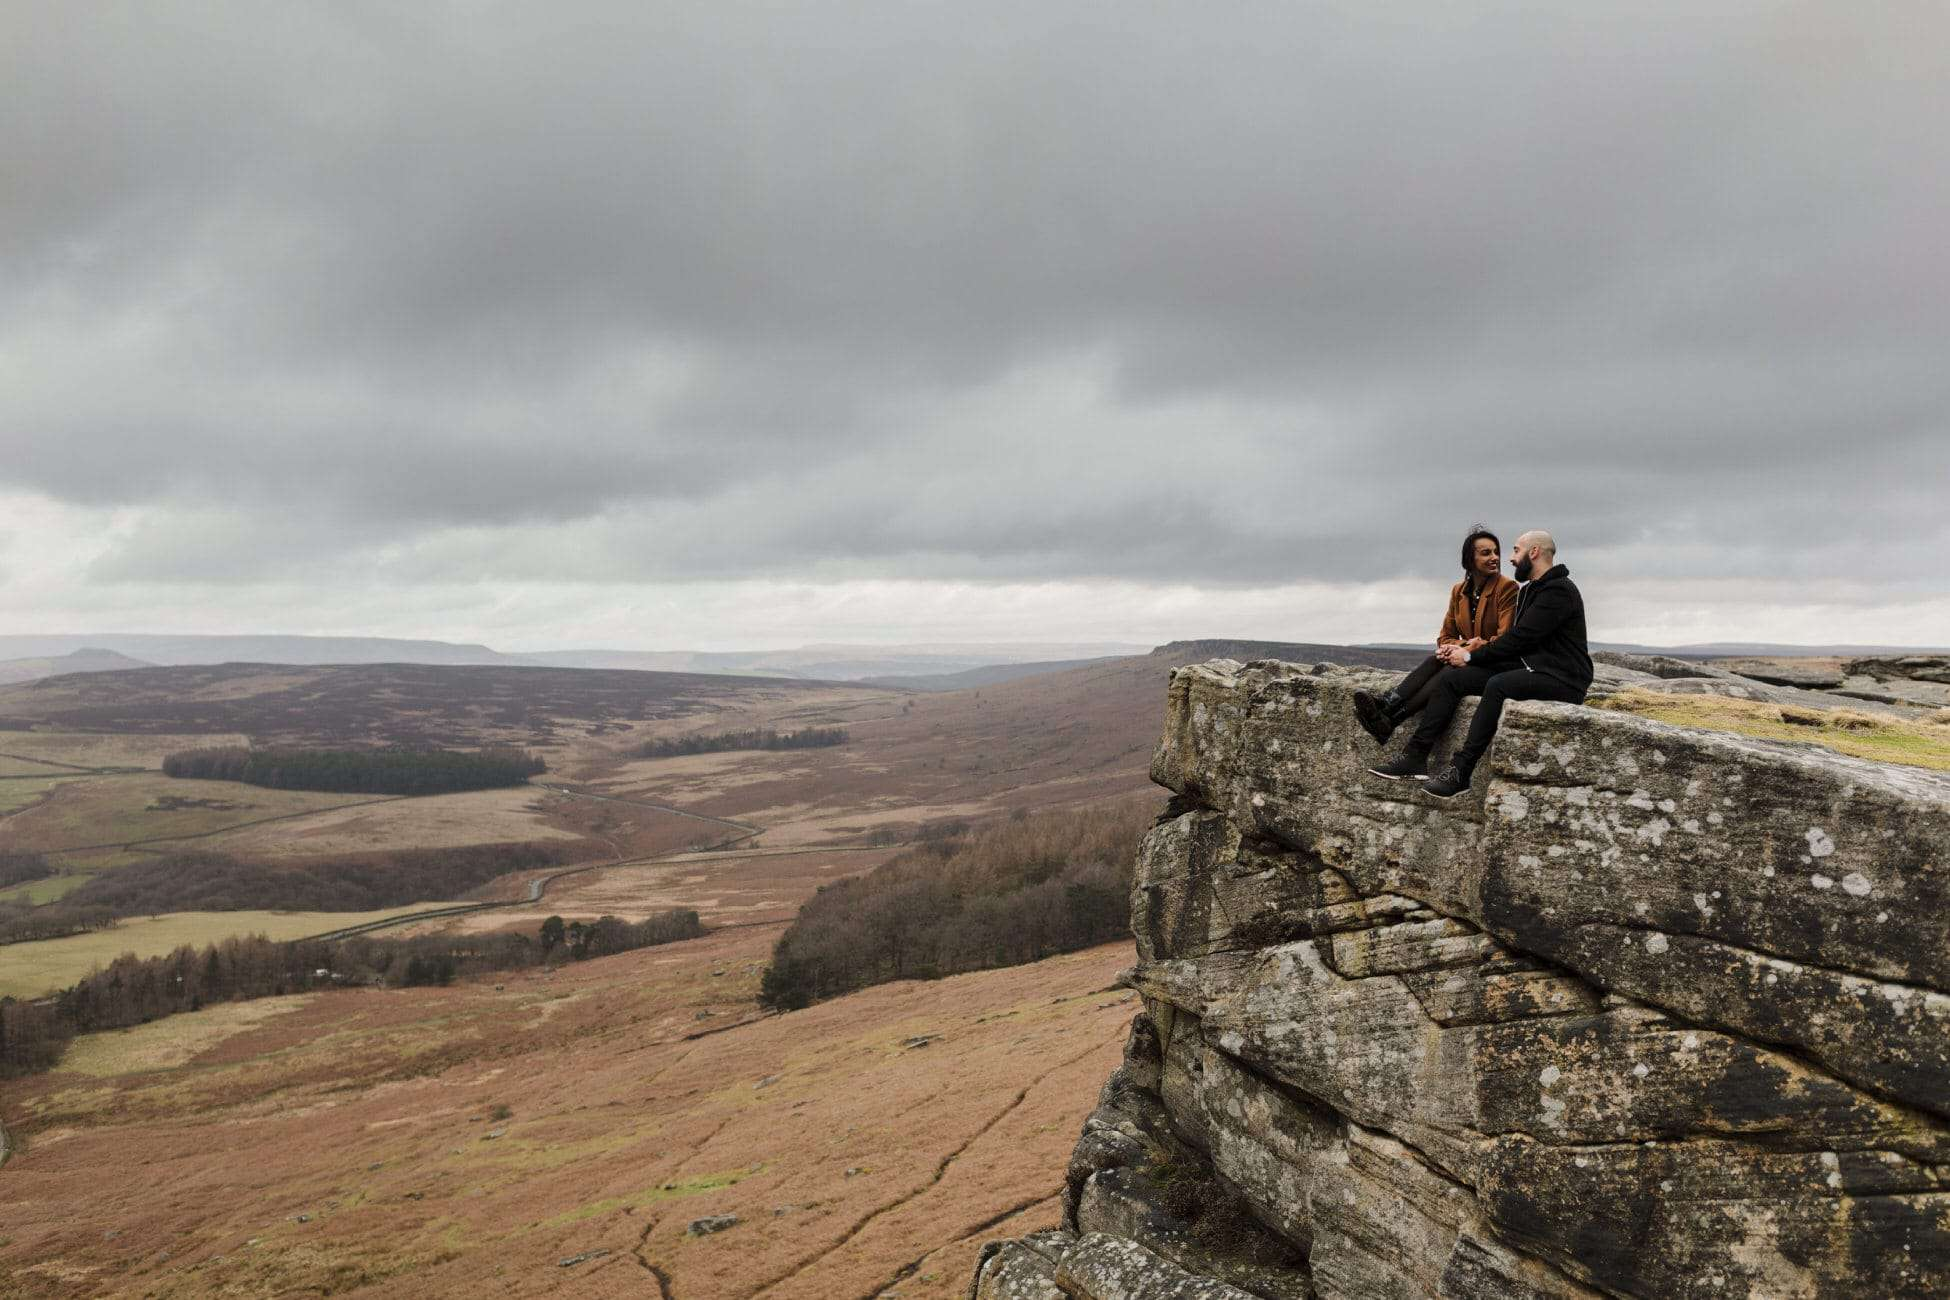 Surprise engagement proposal photo on Stanage Edge in the Peak District